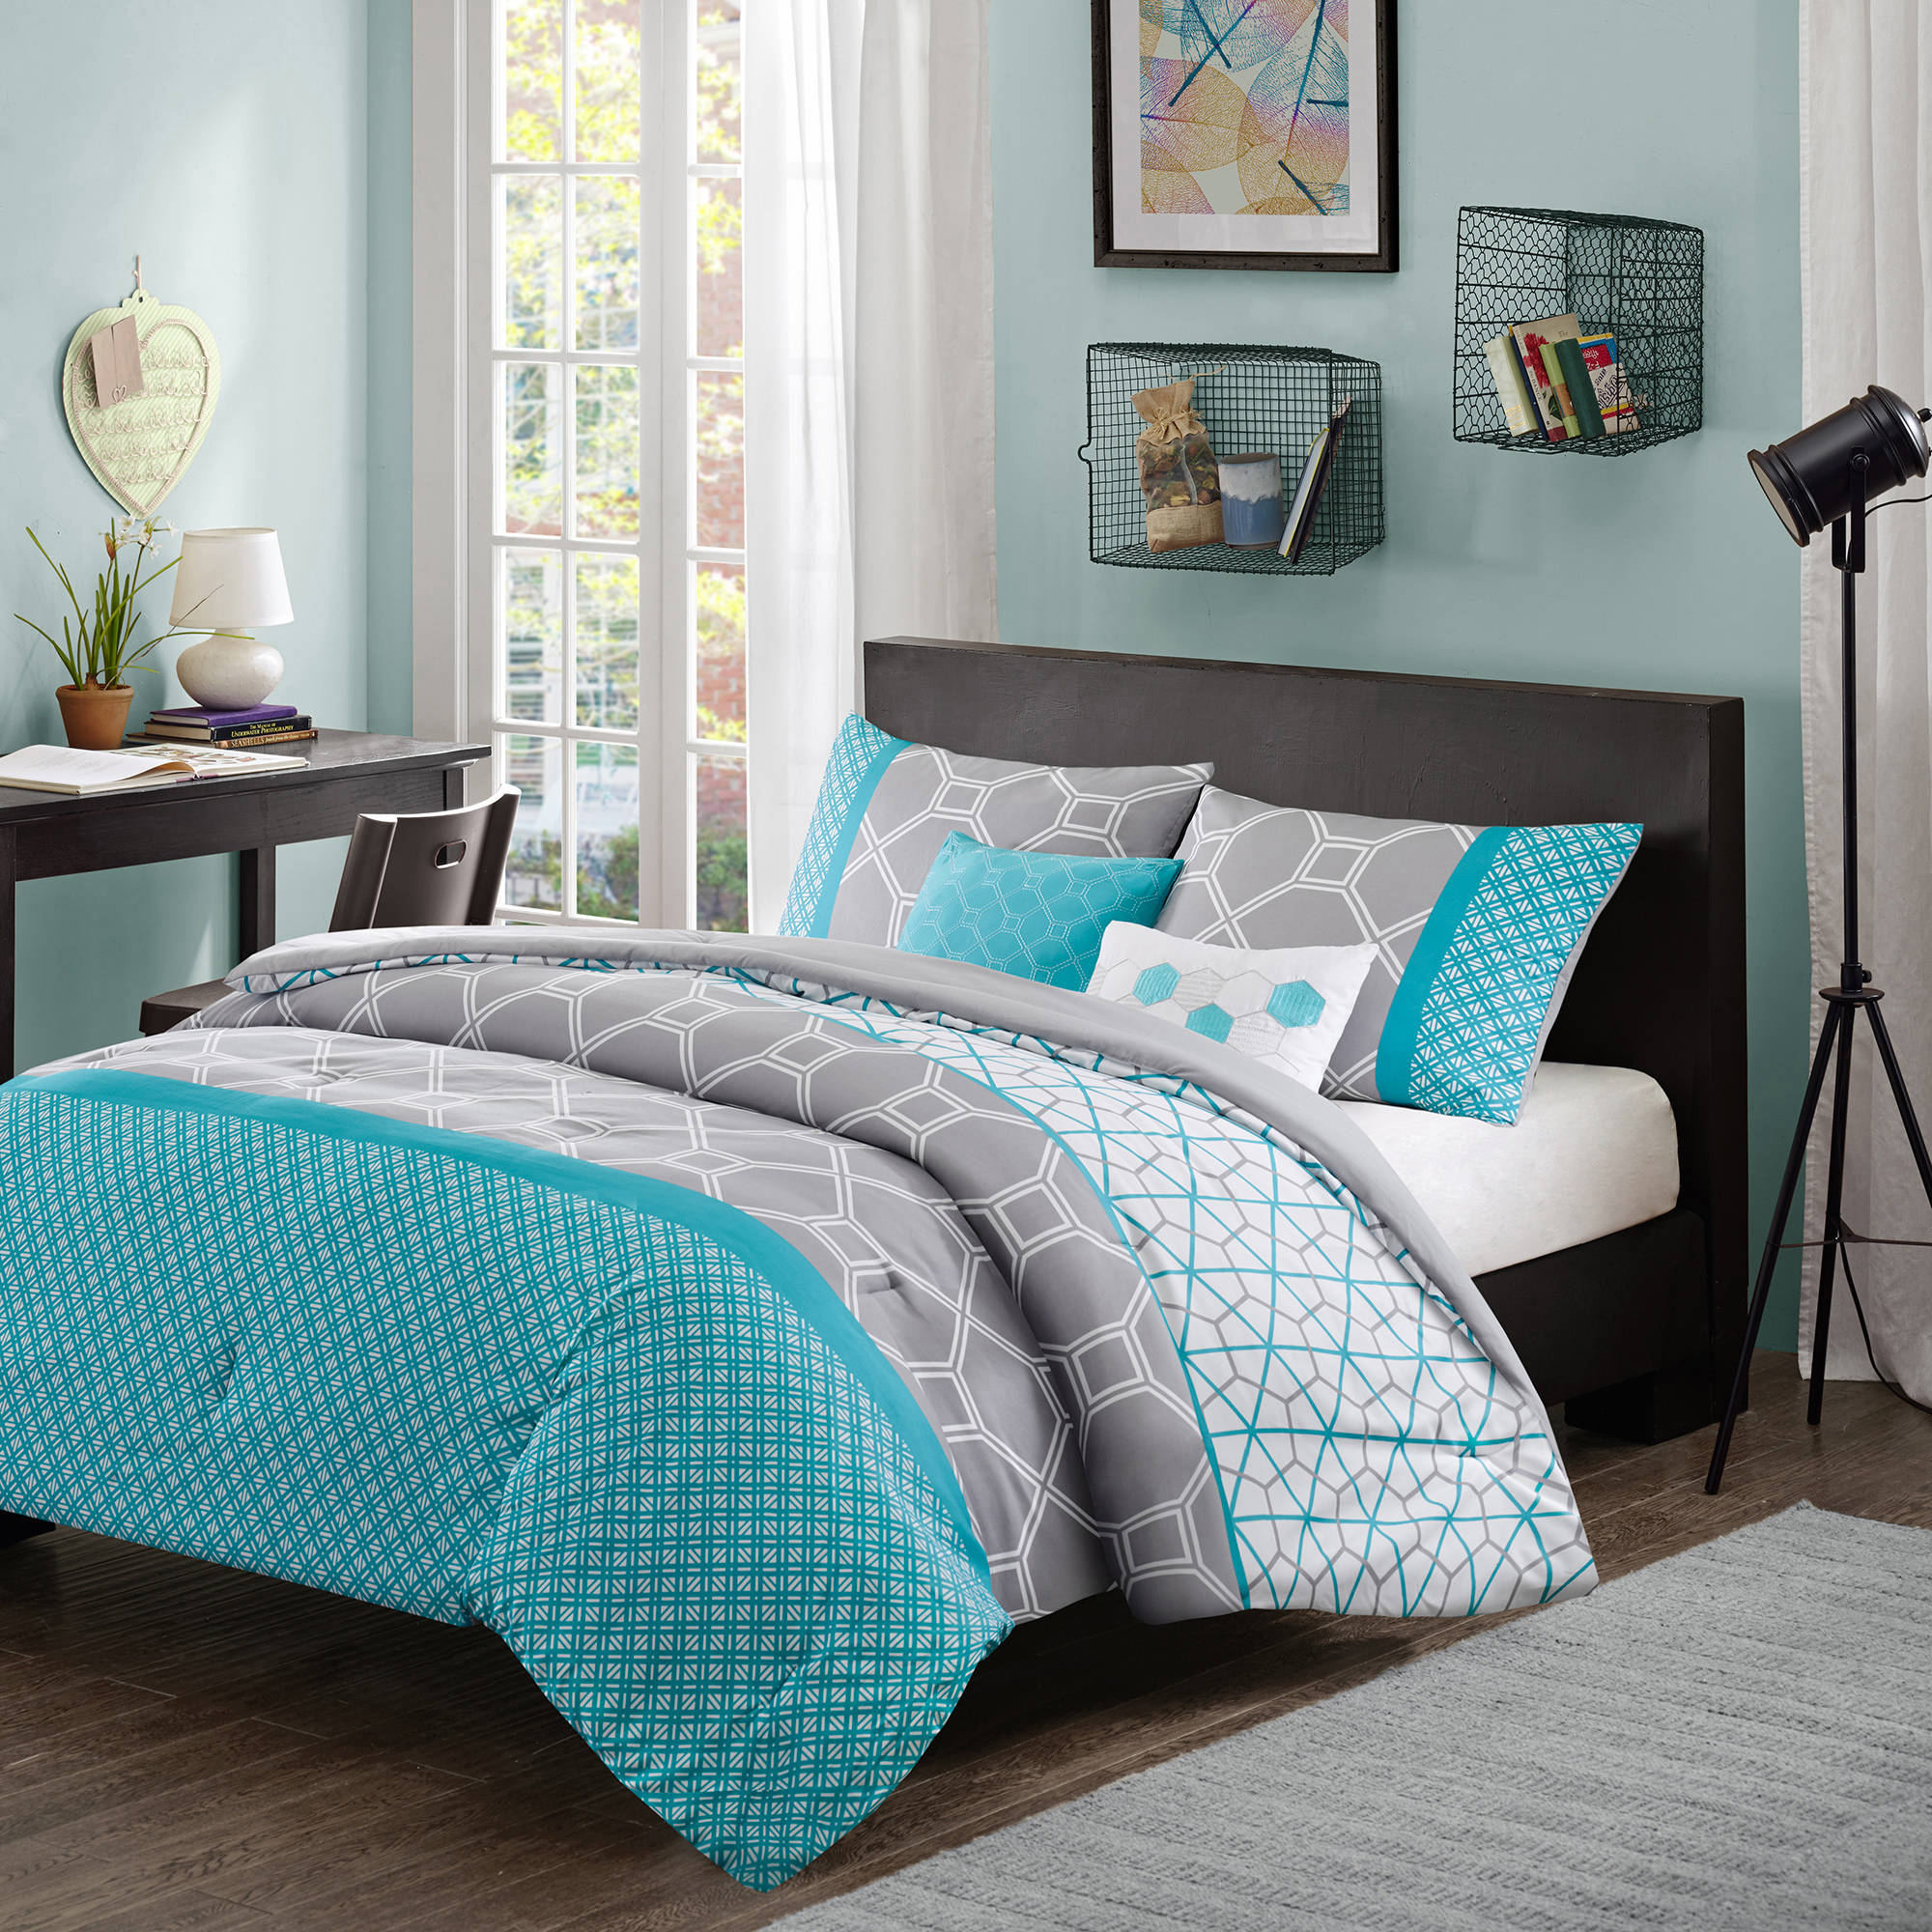 Home Essence Apartment Sarah Bedding Comforter Set